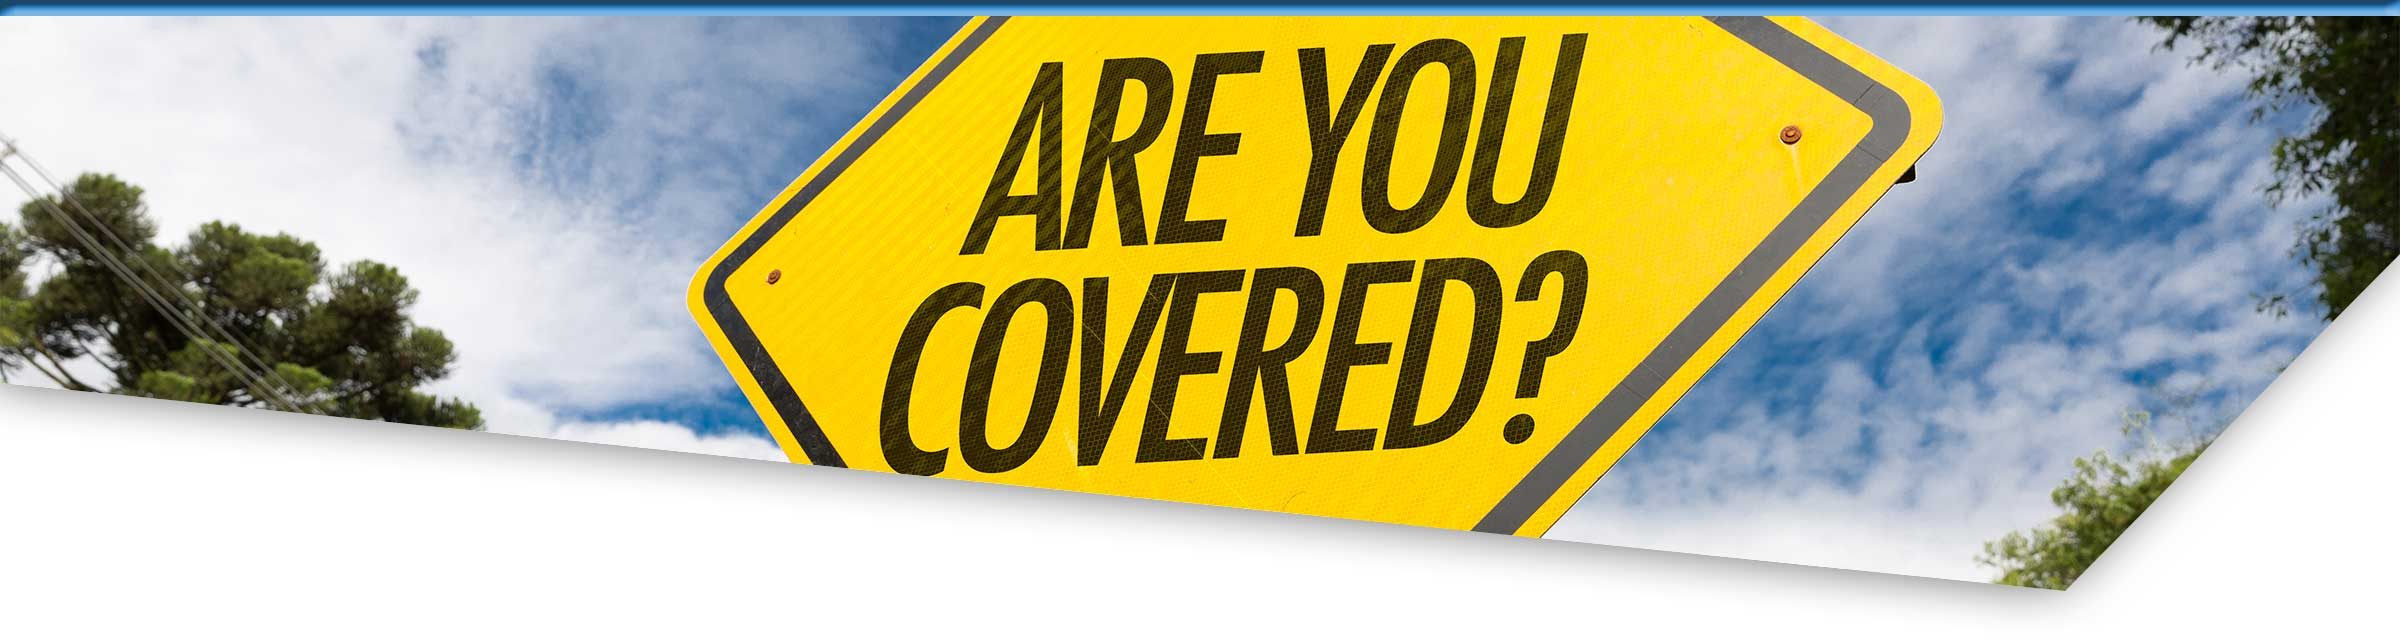 "Warning on a street sign saying ""Are you Covered?"